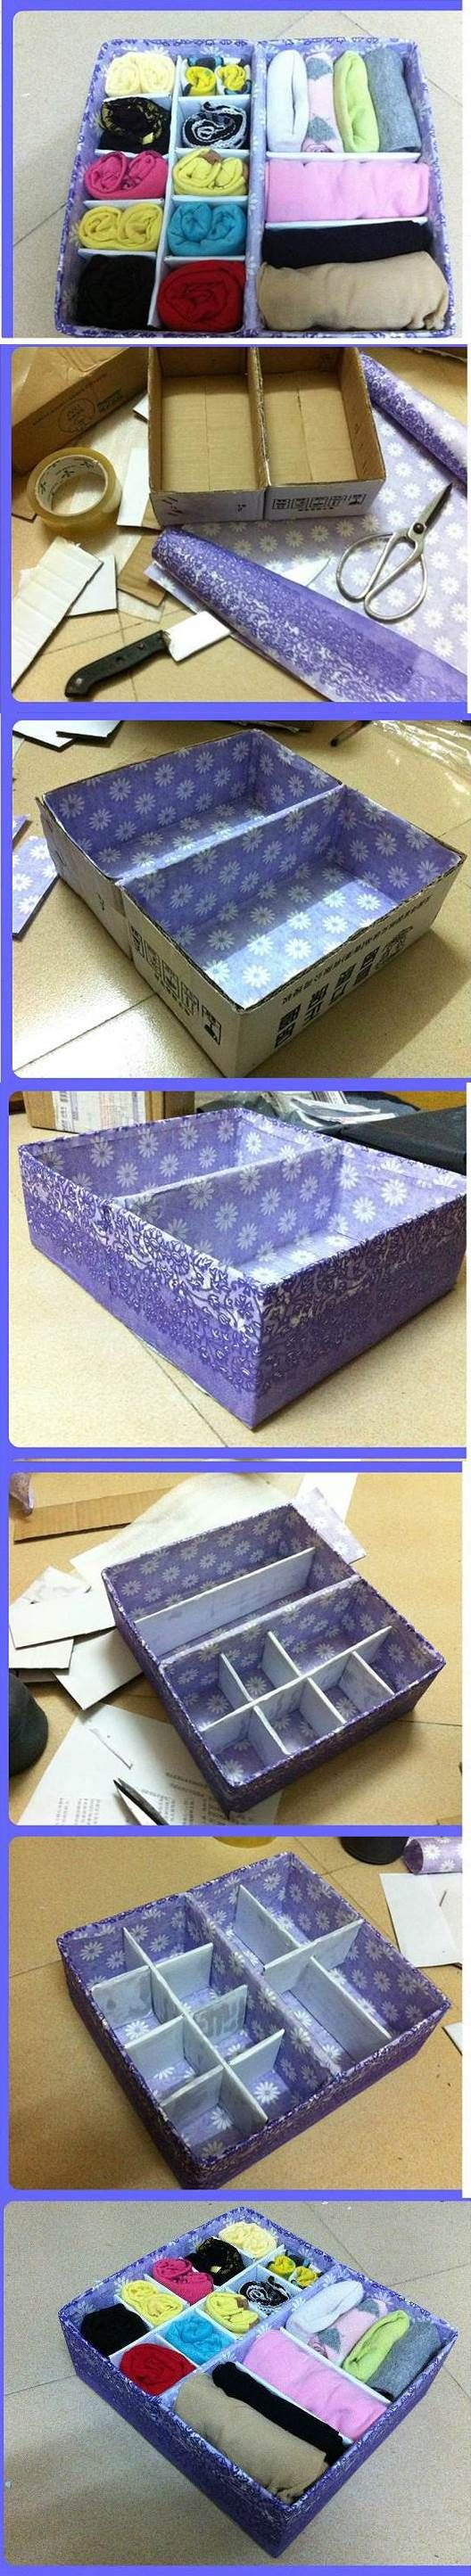 DIY Cardboard Underwear Storage Box | iCreativeIdeas.com Like Us on Facebook ==> https://www.facebook.com/icreativeideas